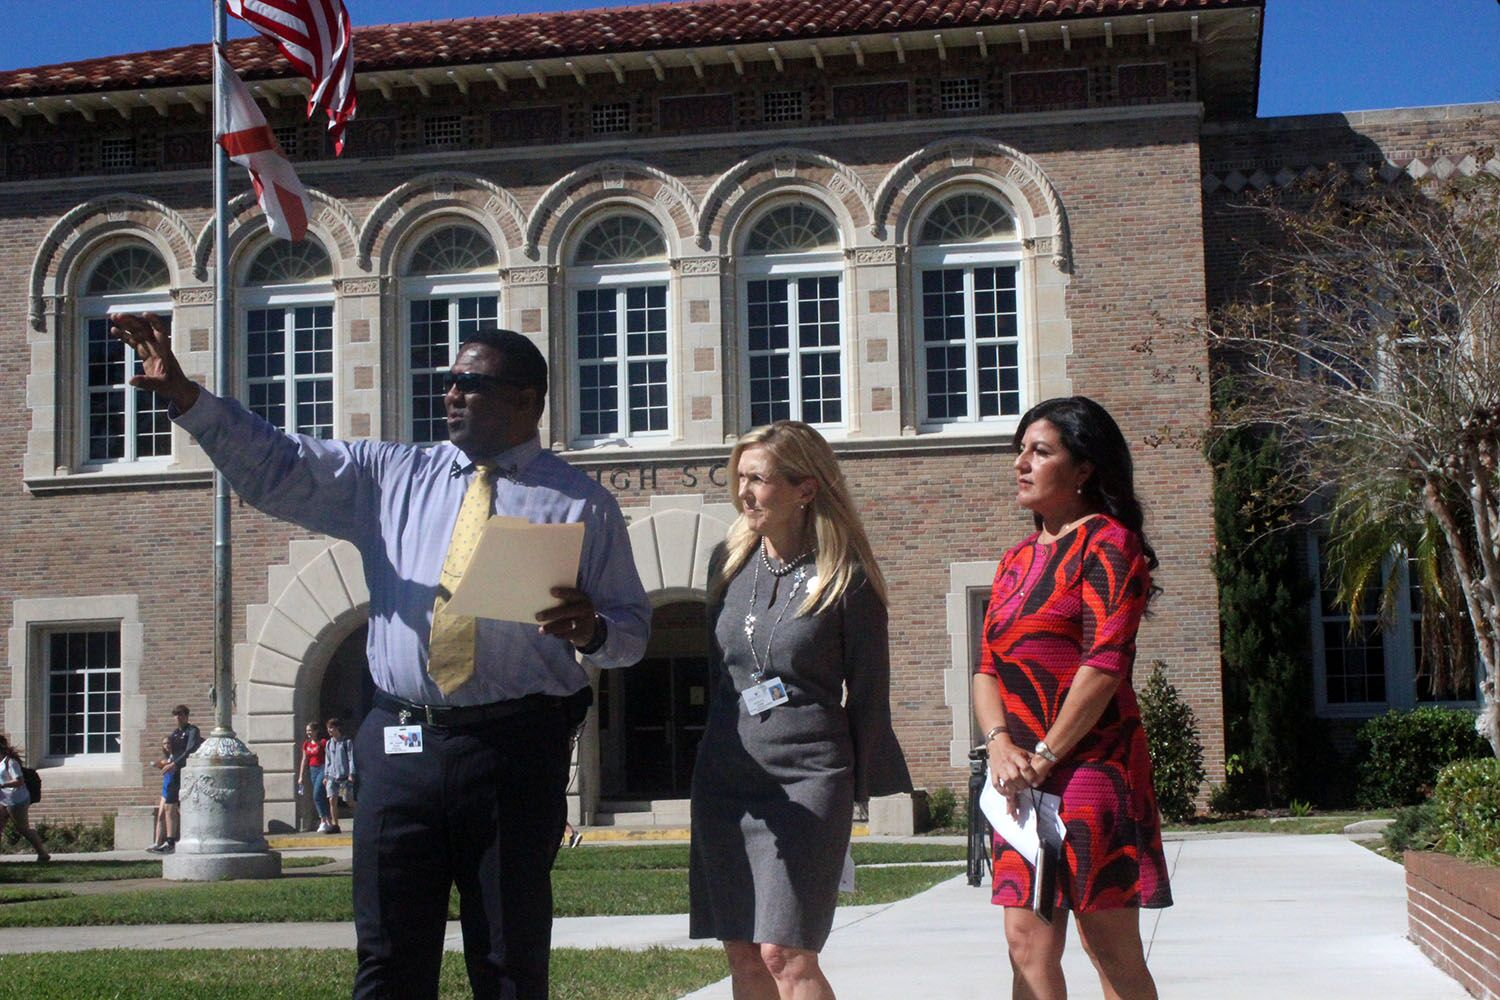 Speaking with school board member Stacy Hahn and state representative Jackie Toledo, Principal Johnny Bush gives a tour of the new security implements  Feb. 11. Bush pointed out the new locking gates with a buzzer system and 33 security cameras placed around school.